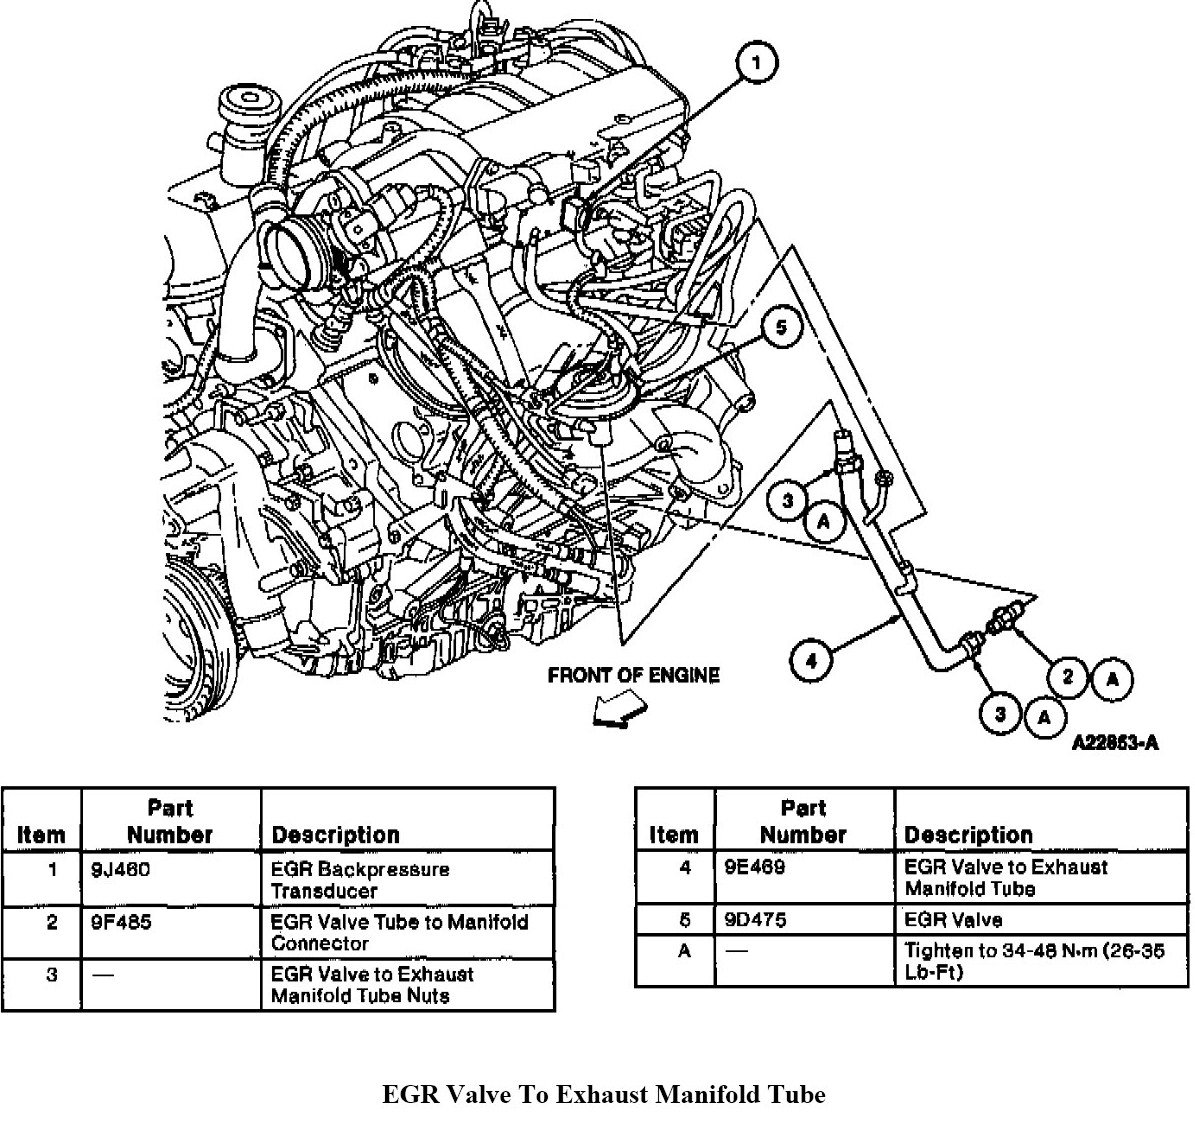 96 chevy s10 spark plug wire diagram 1995 s10 egr plug wiring diagram where is the egr valve located on a 1995 ford aerostar